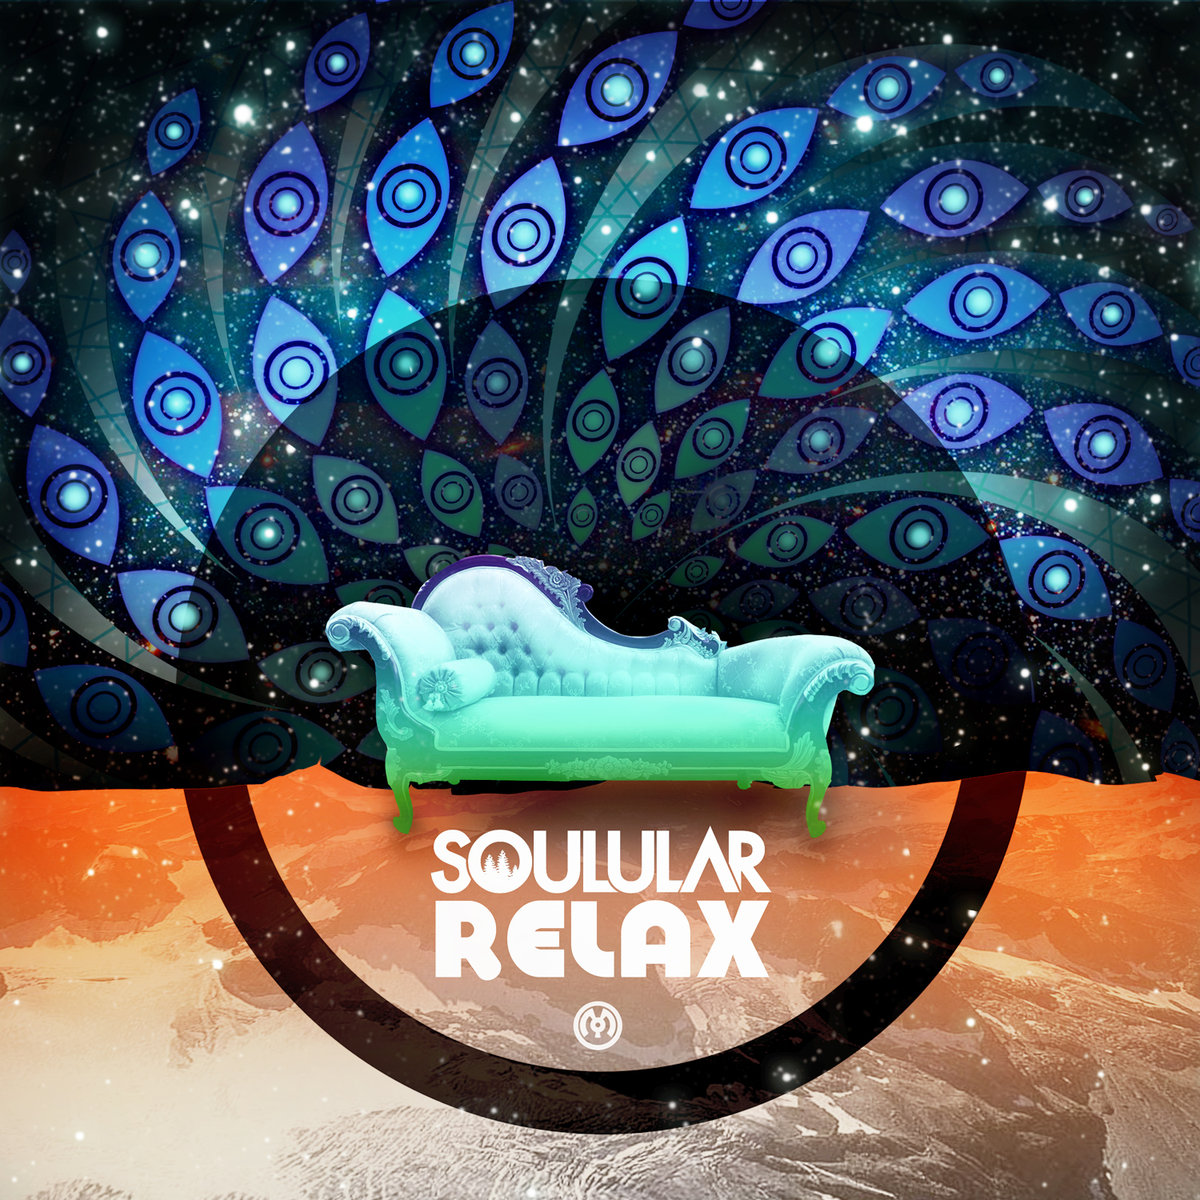 Soulular - Relax (artwork)